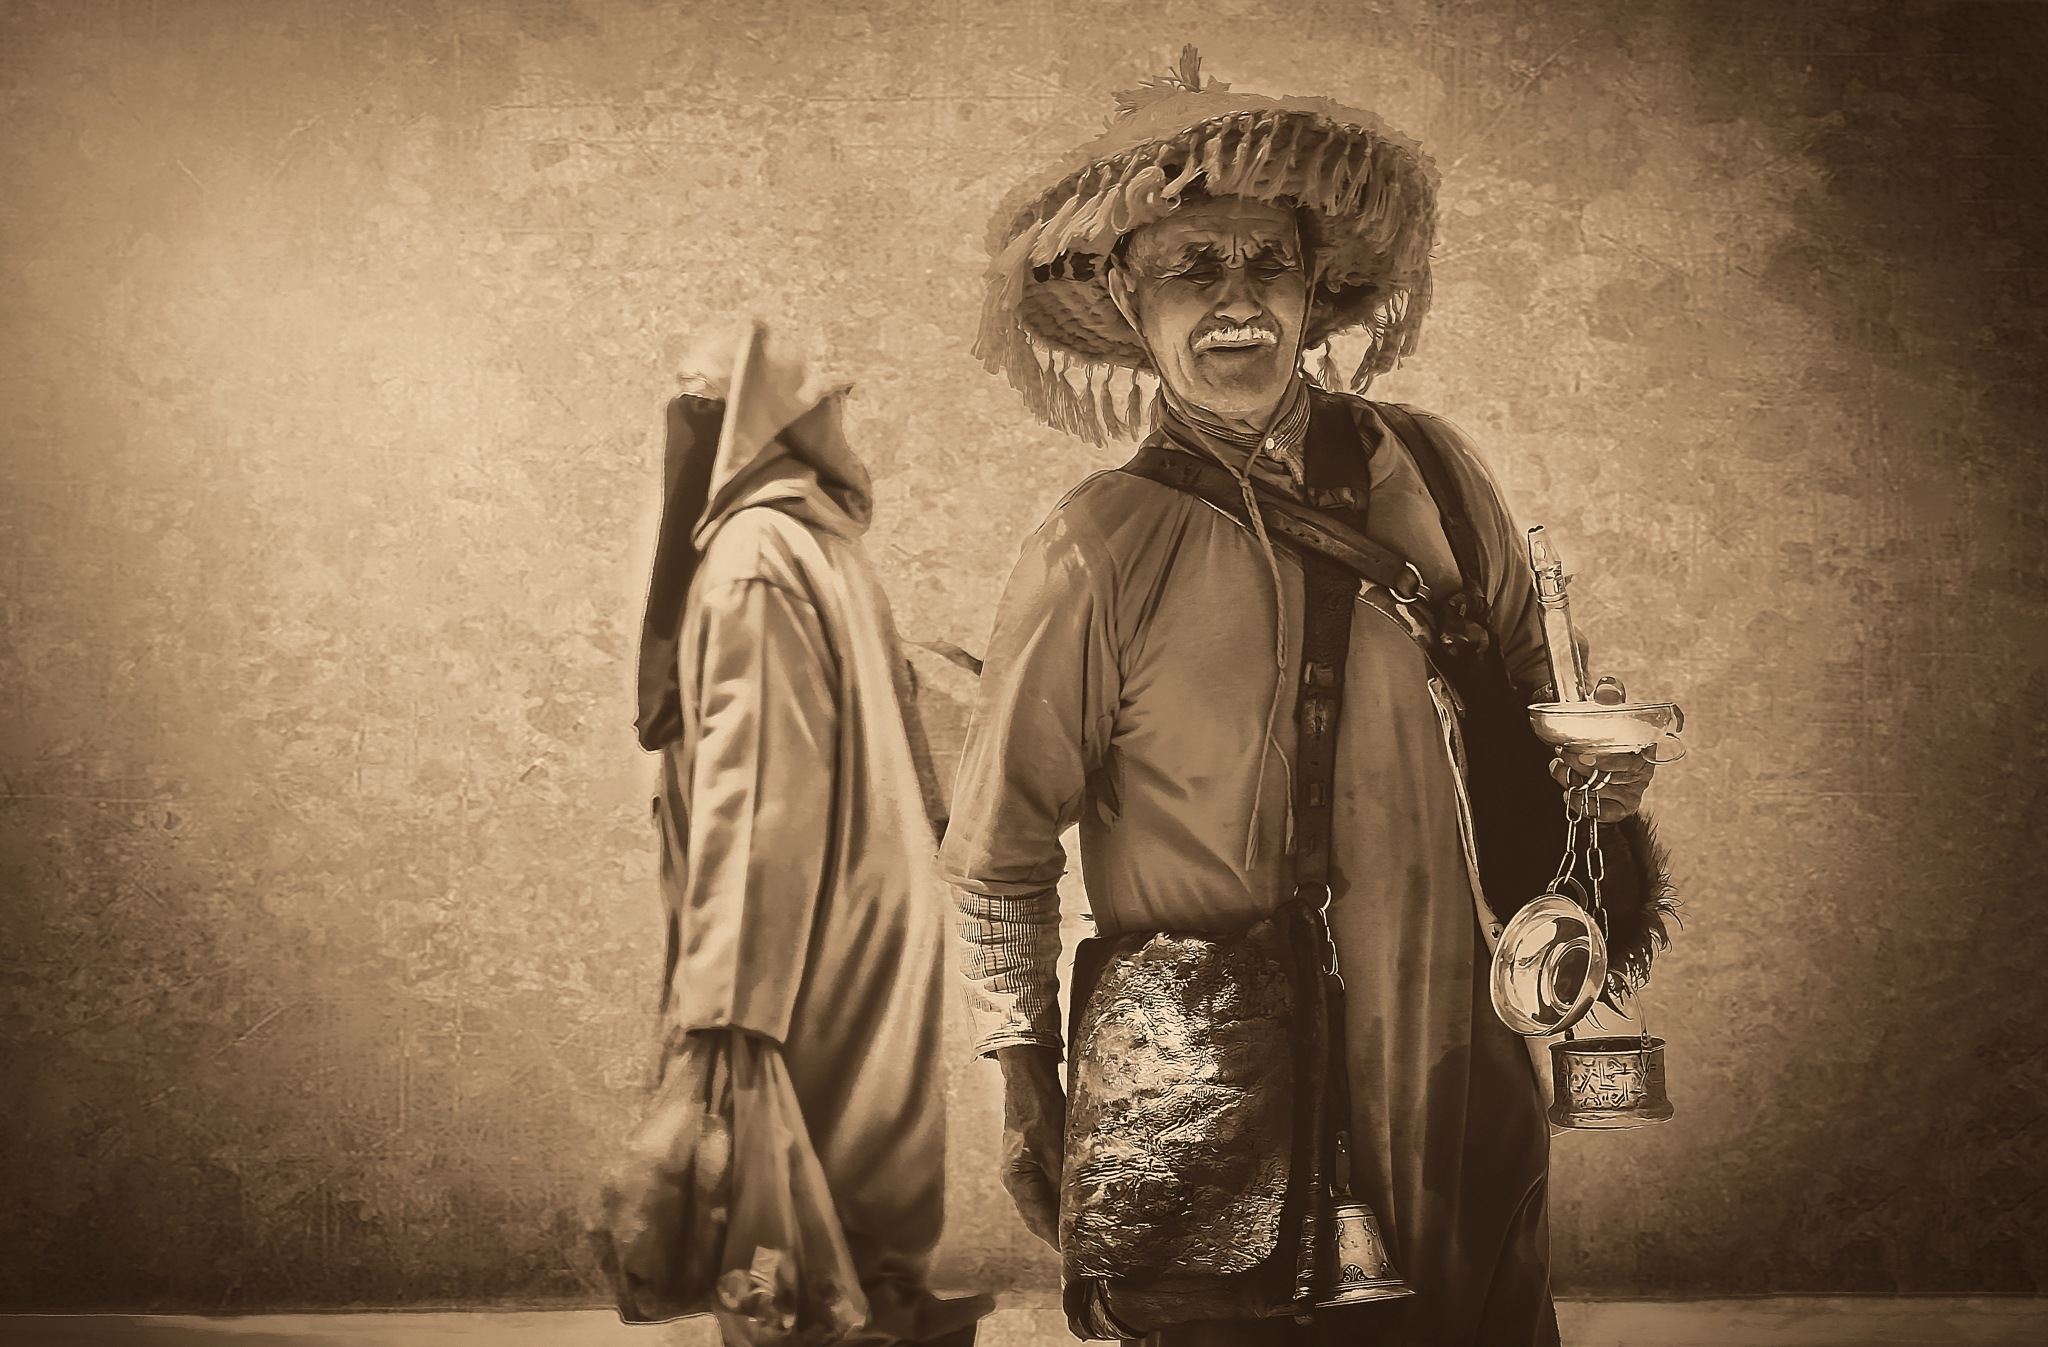 Faces from deep Morocco by mohamed.srai.3